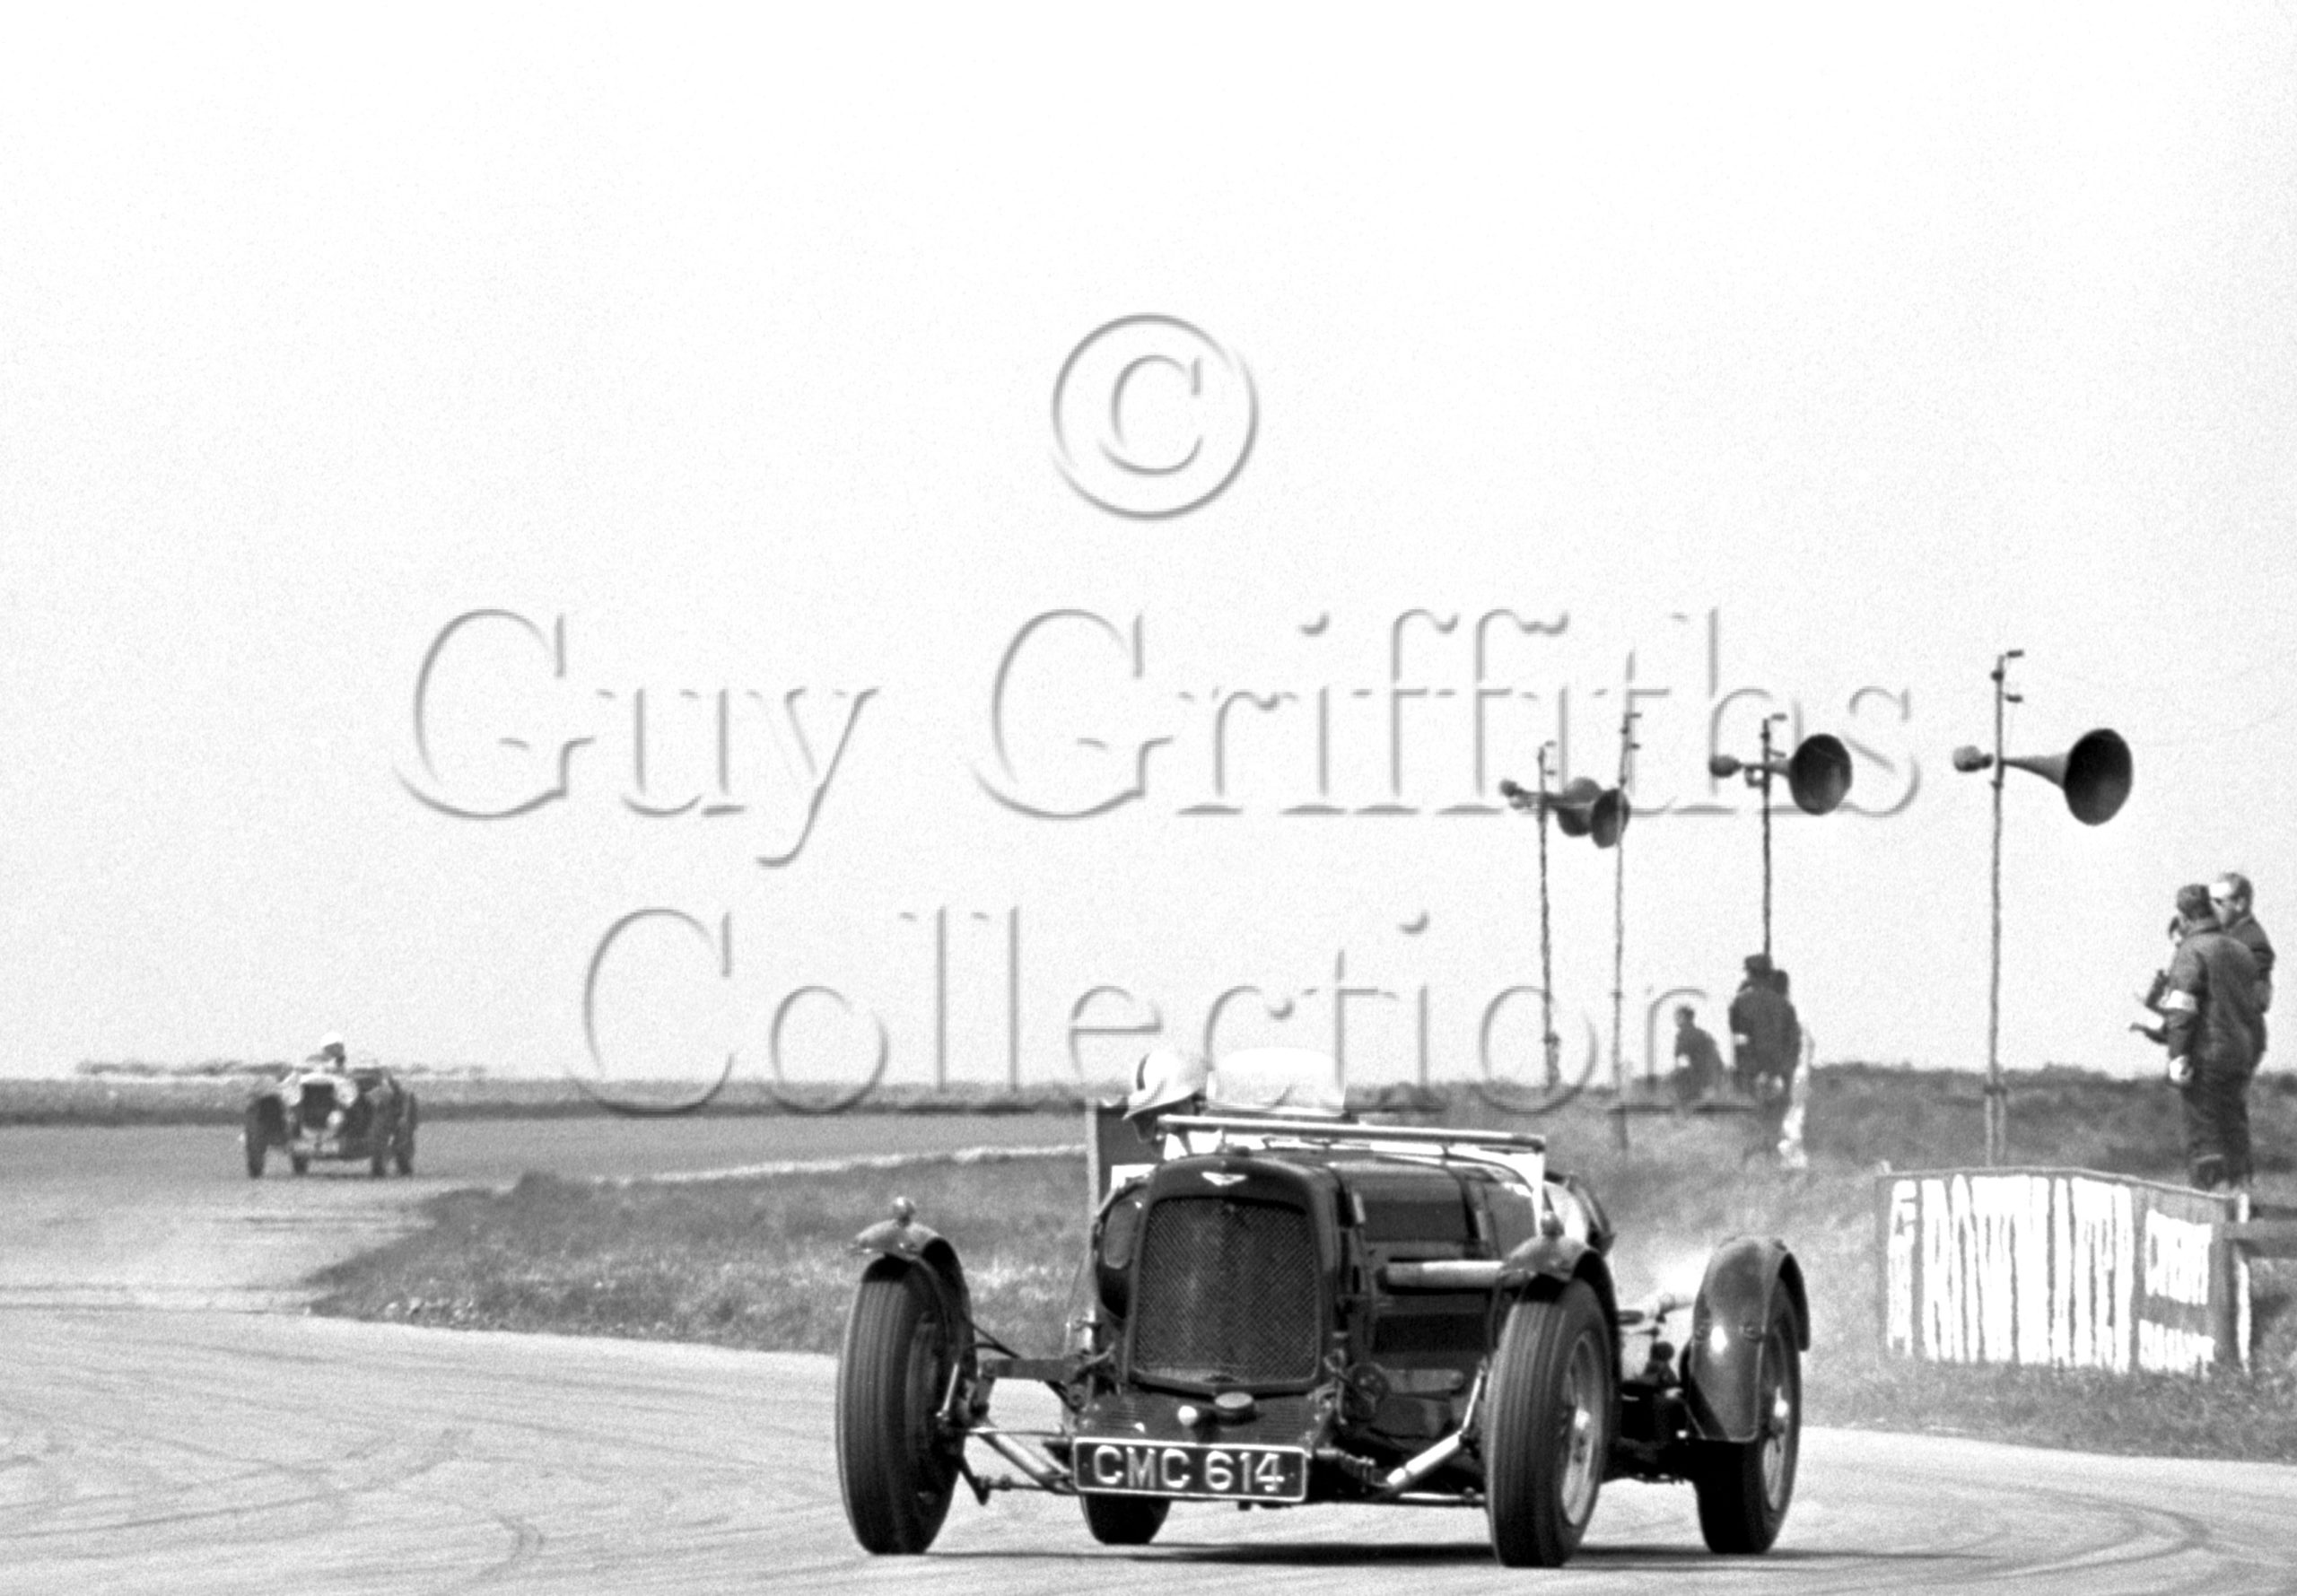 115-932–D-Edwards–Aston-Martin-CMC-614–Silverstone–19-04-1969.jpg - Guy Griffiths Collection